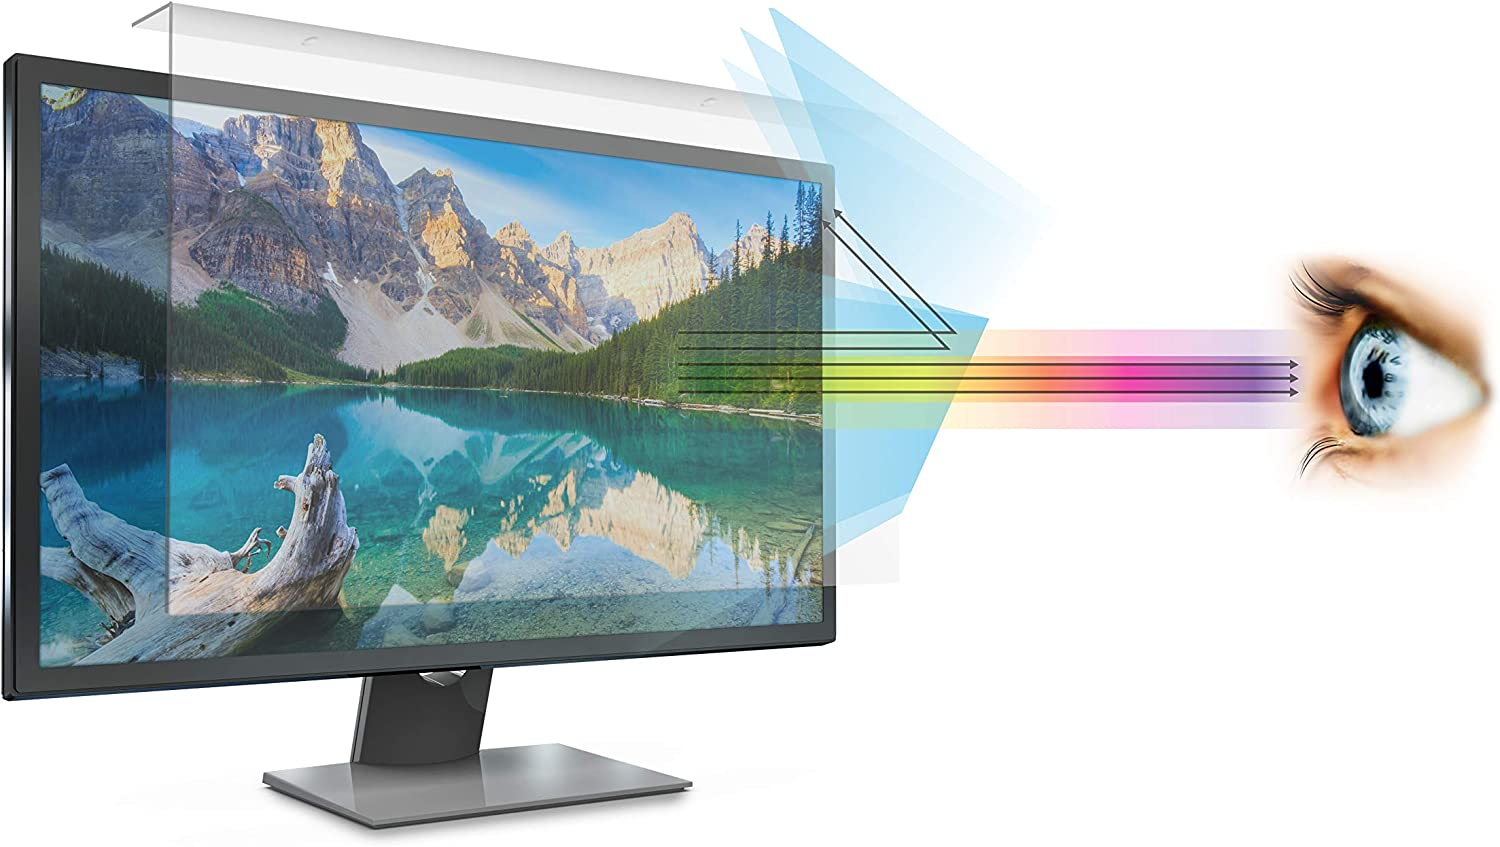 Anti Blue Light Screen filter for 20 Inches Desktop Monitor, Screen Filter size is 10.6